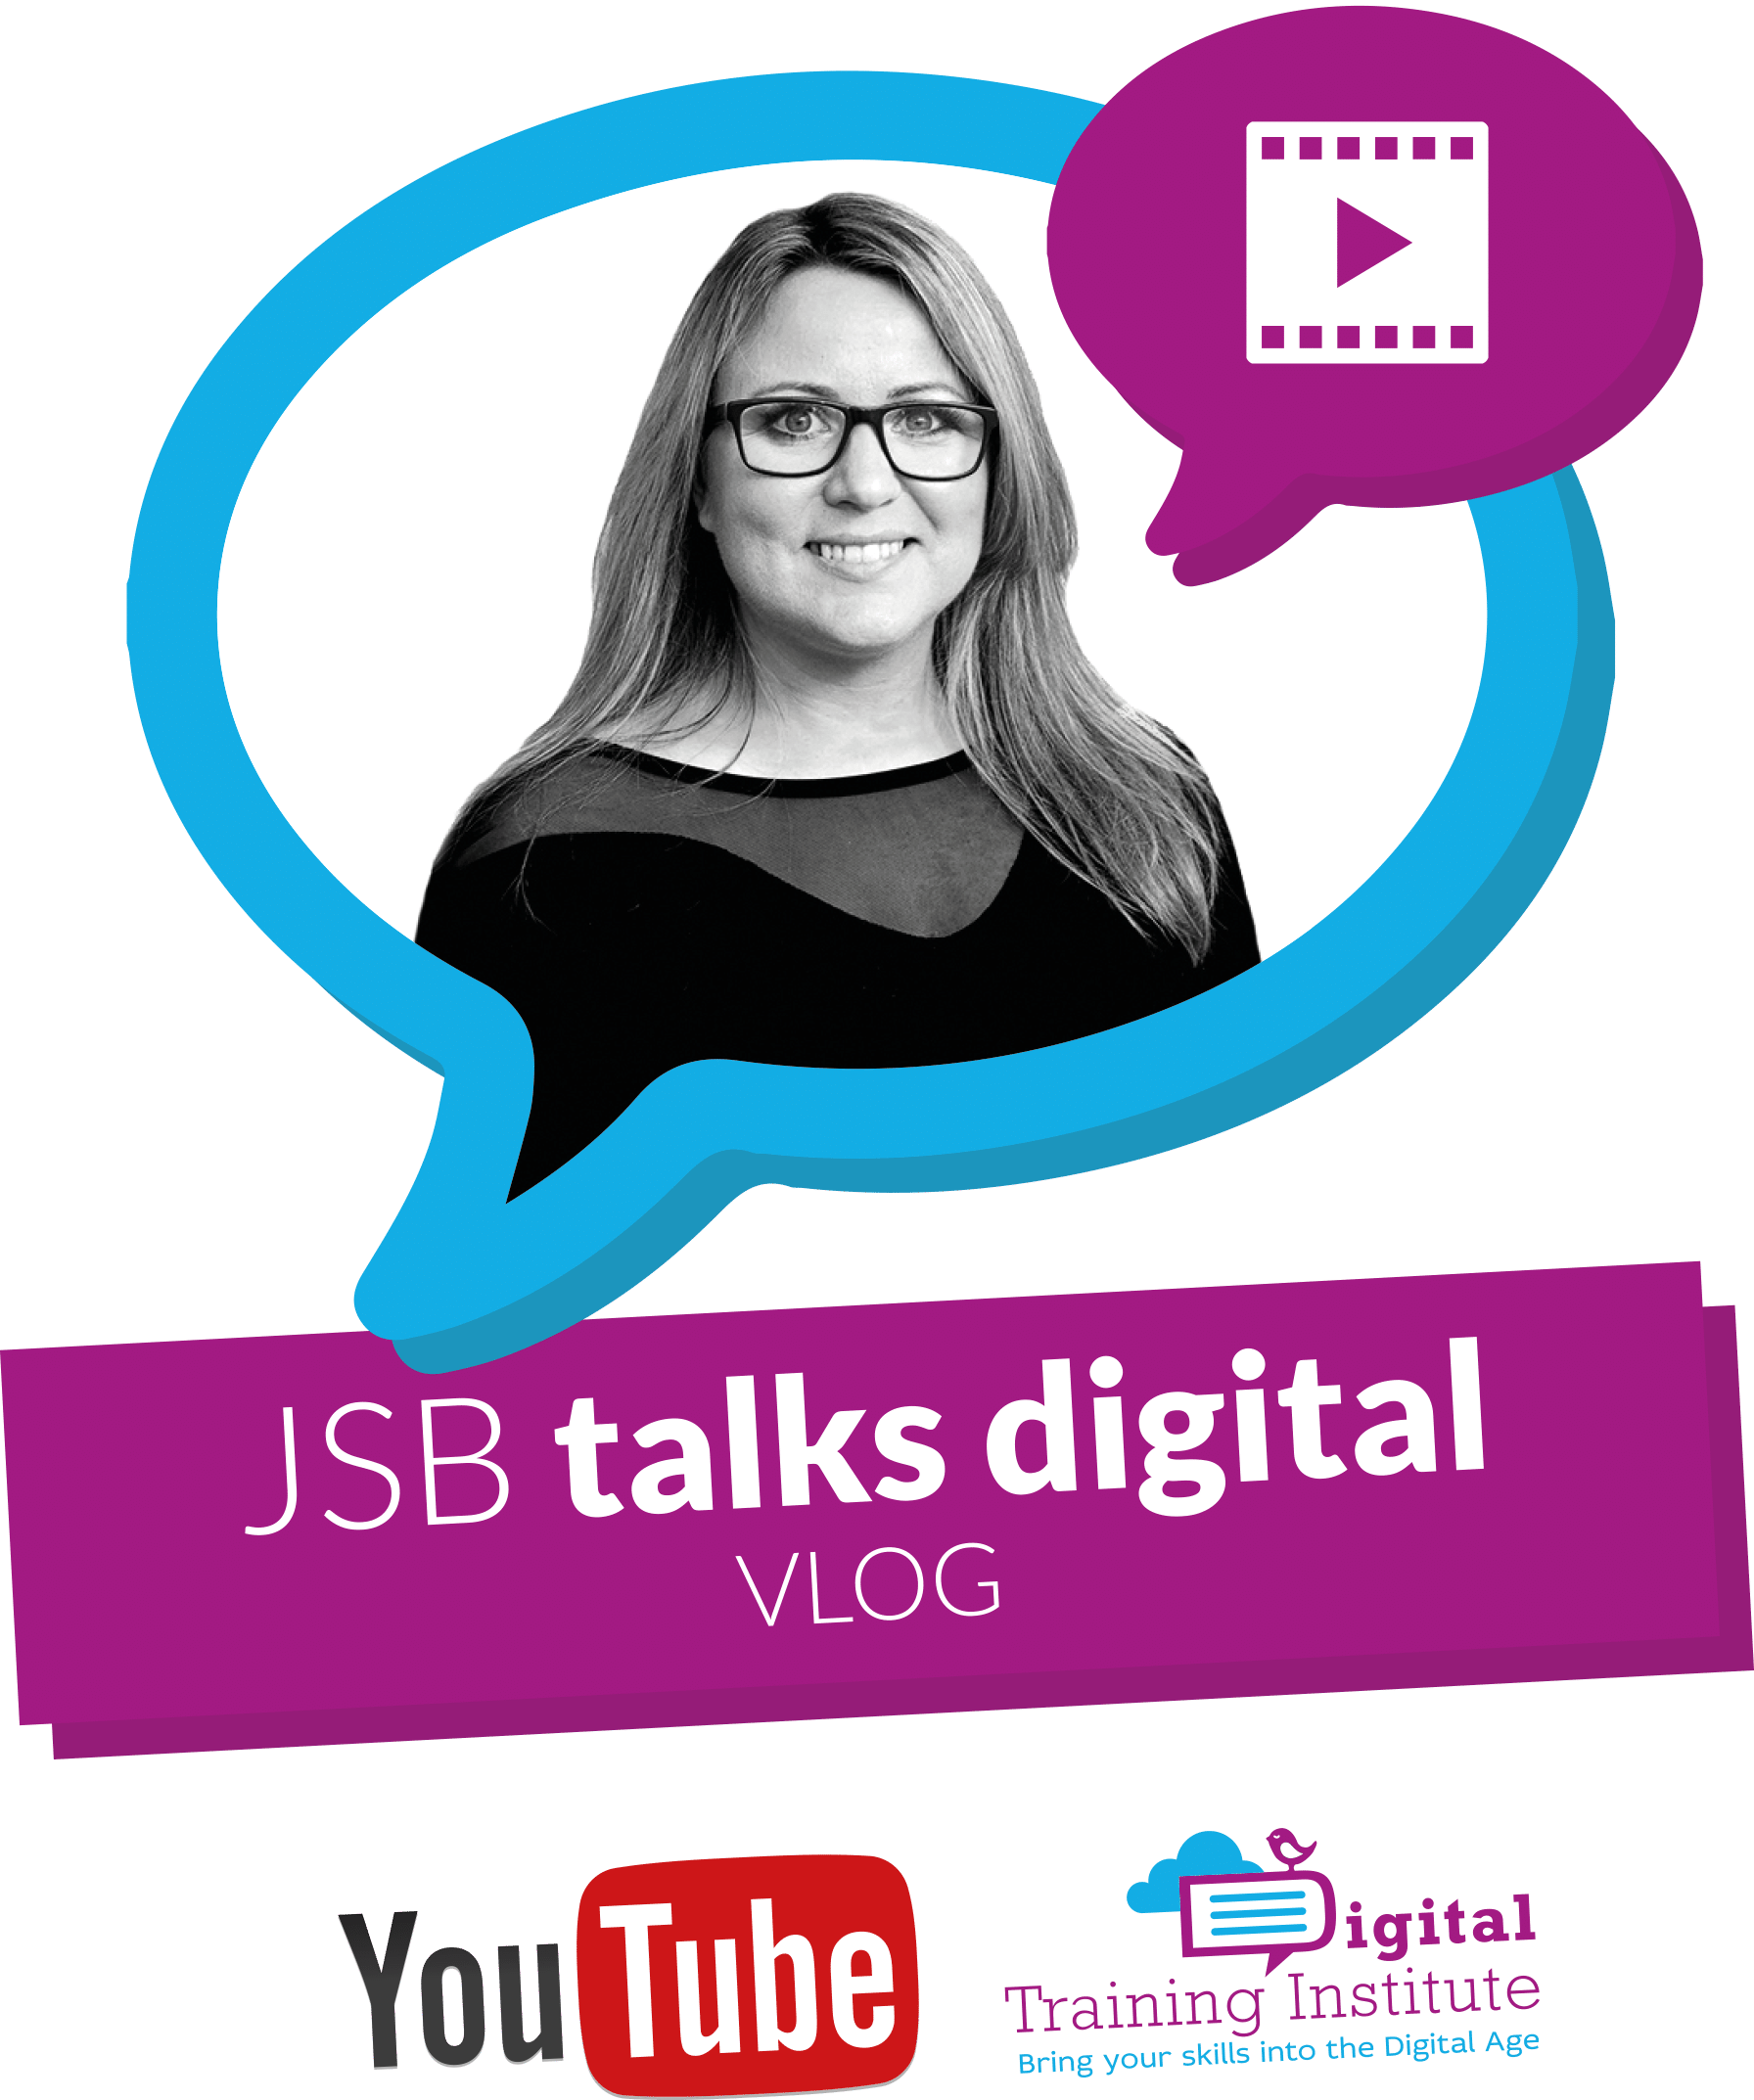 jsb-talks-digital-vlog-logos-transparent